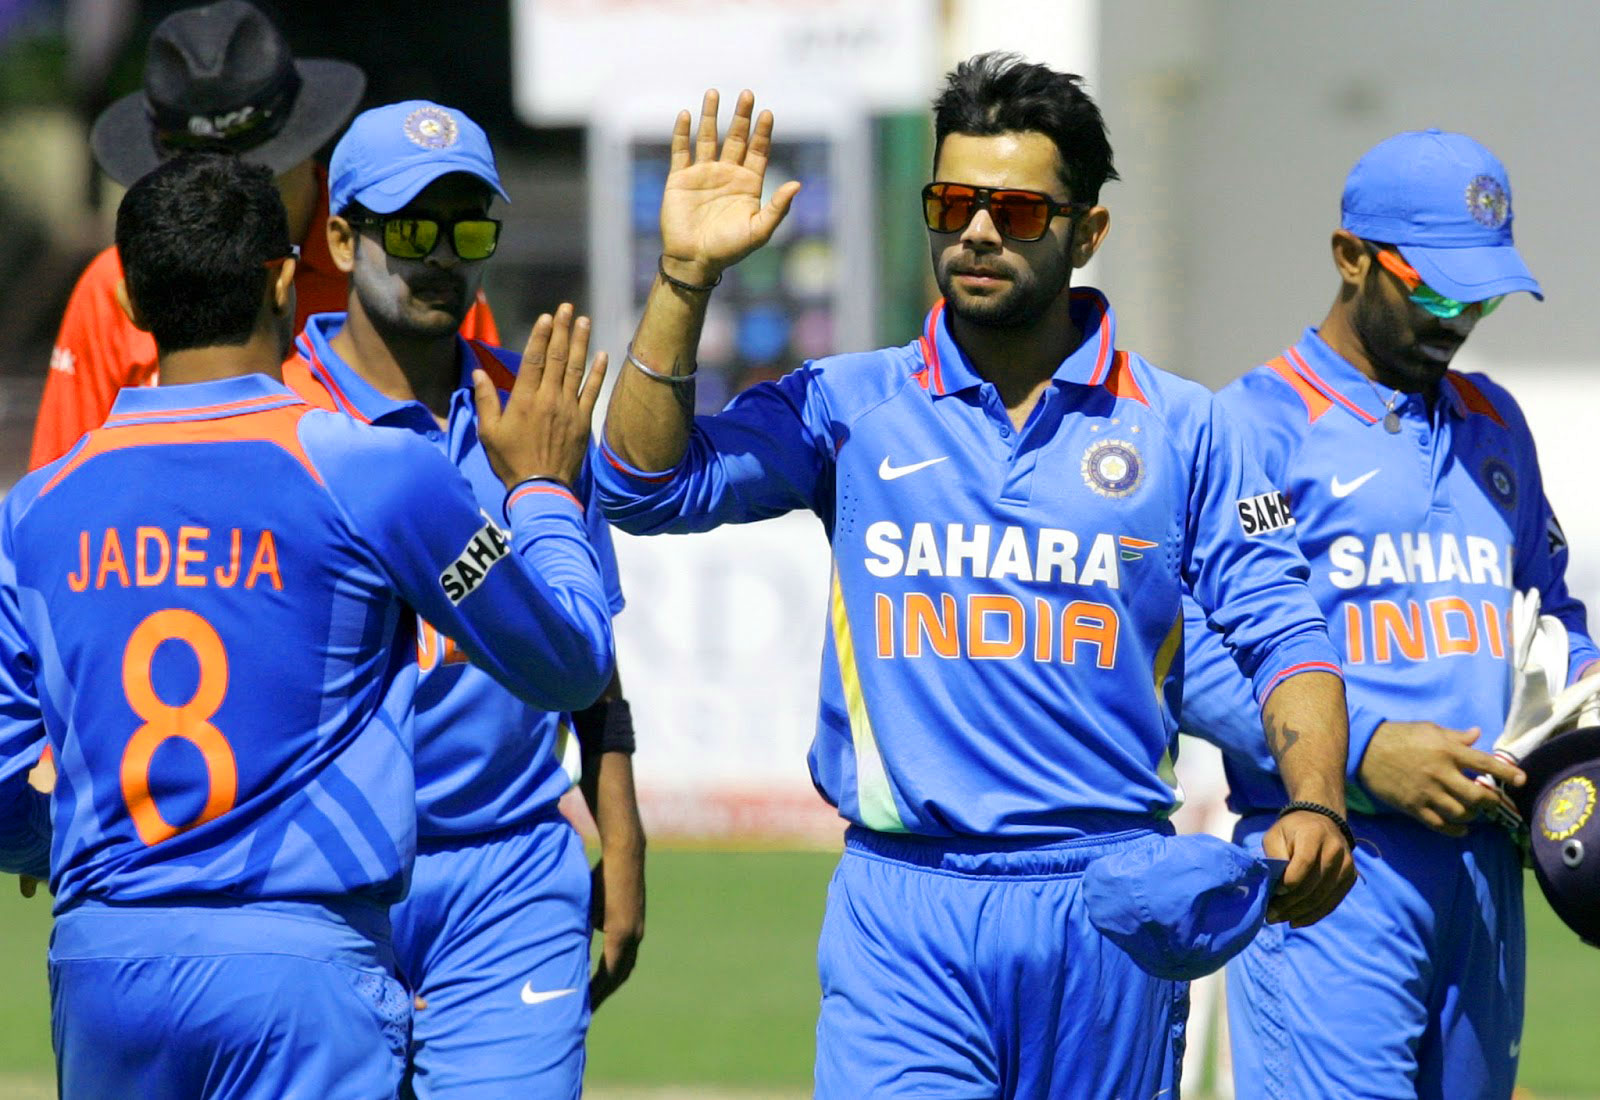 INDIAN CRICKET TEAM PLAYER IMAGES WALLPAPER PICTURES FREE